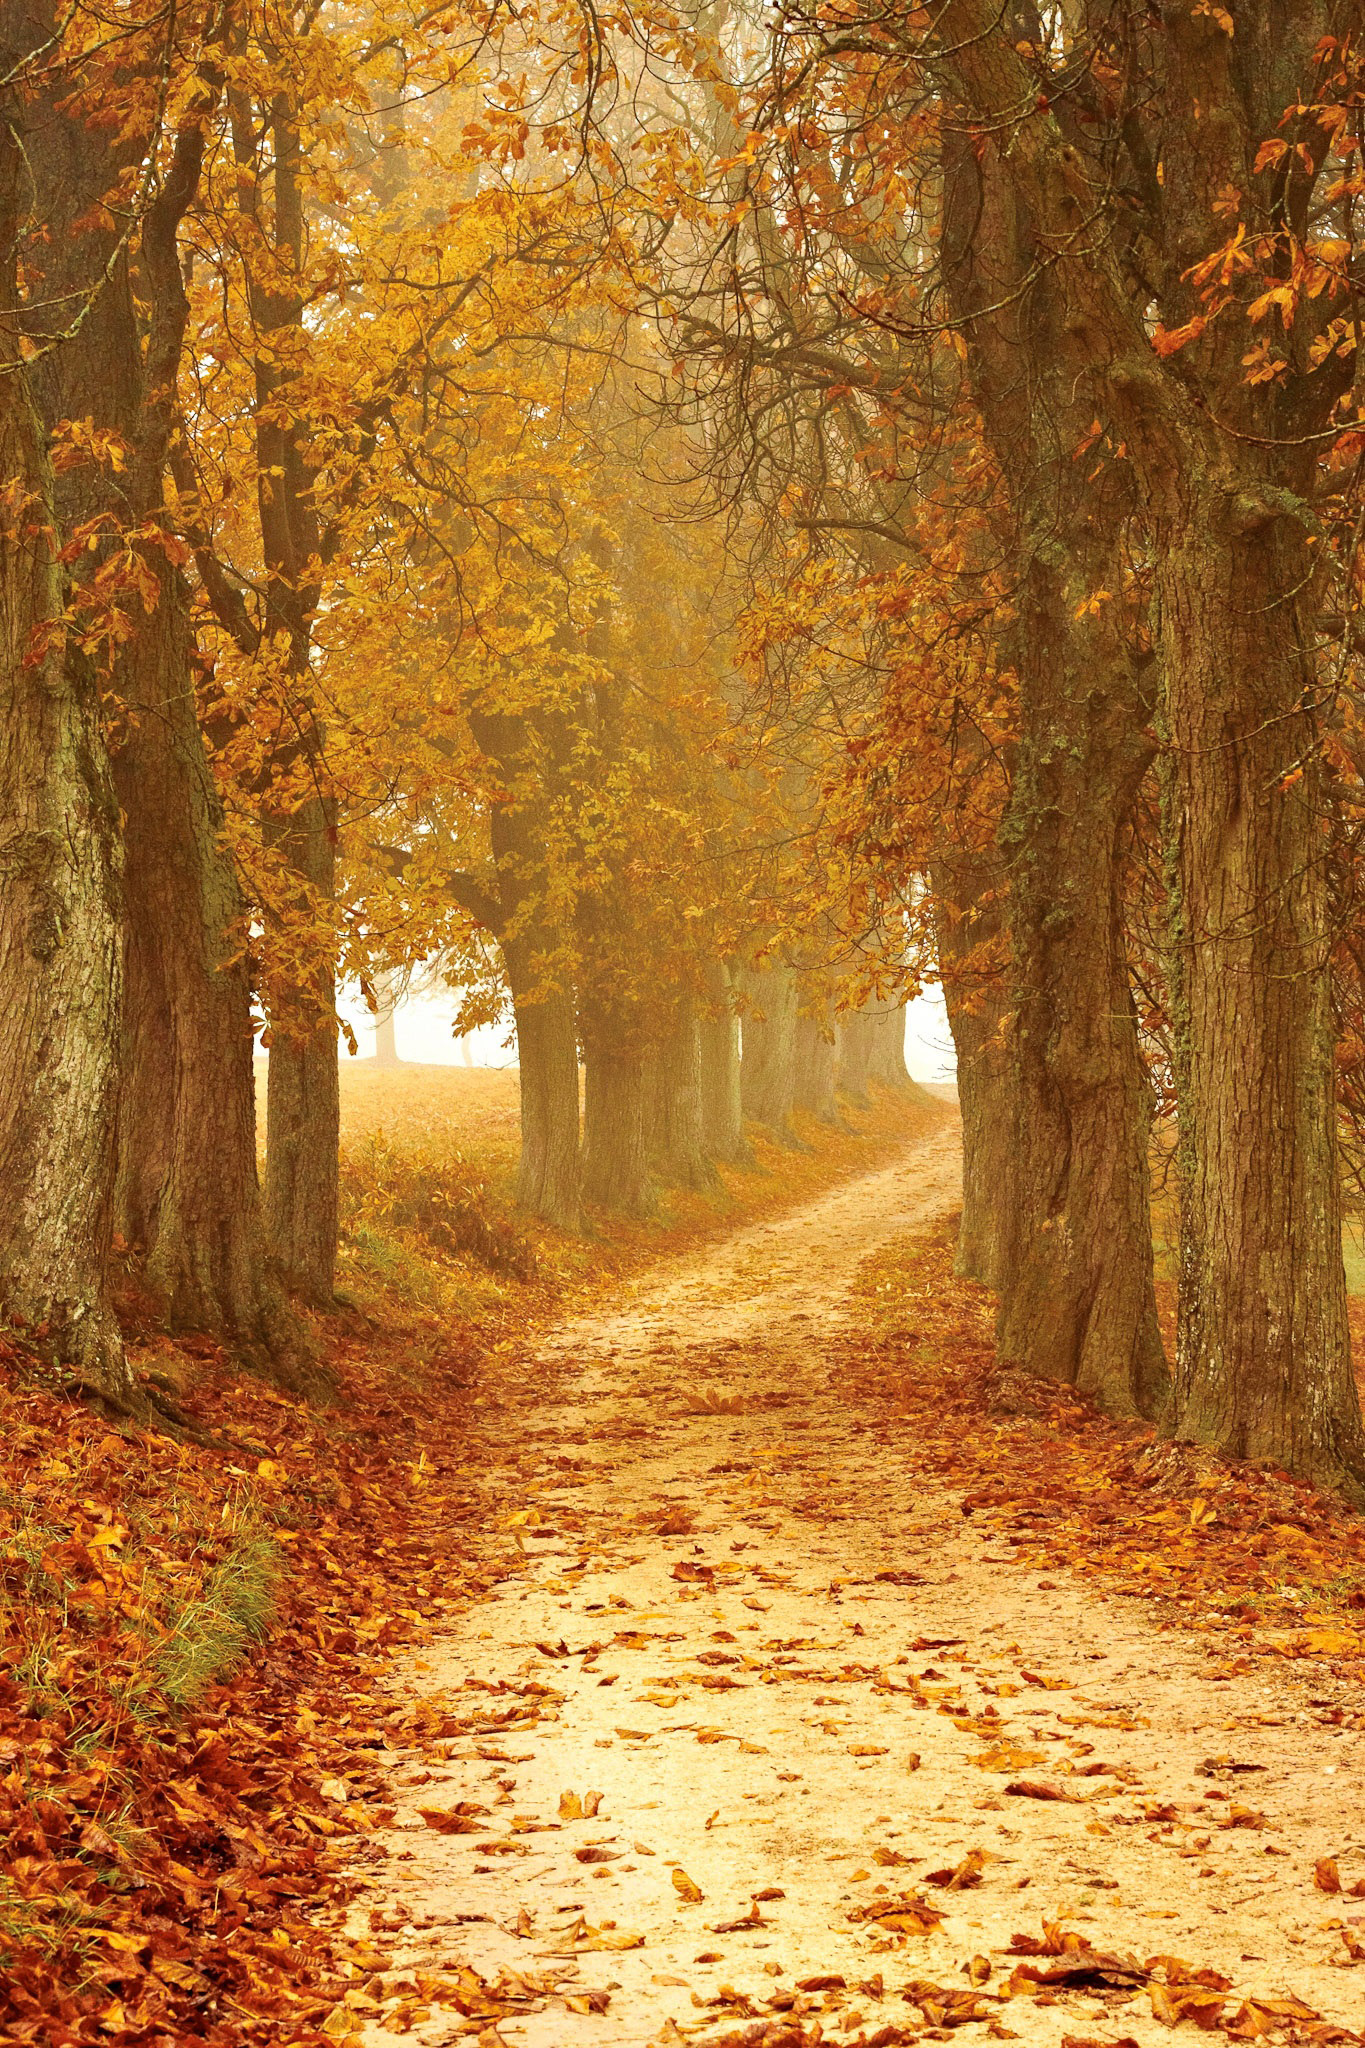 Free Fall Forest Wallpaper Golden Path In Autumn Between The Trees Image Free Stock